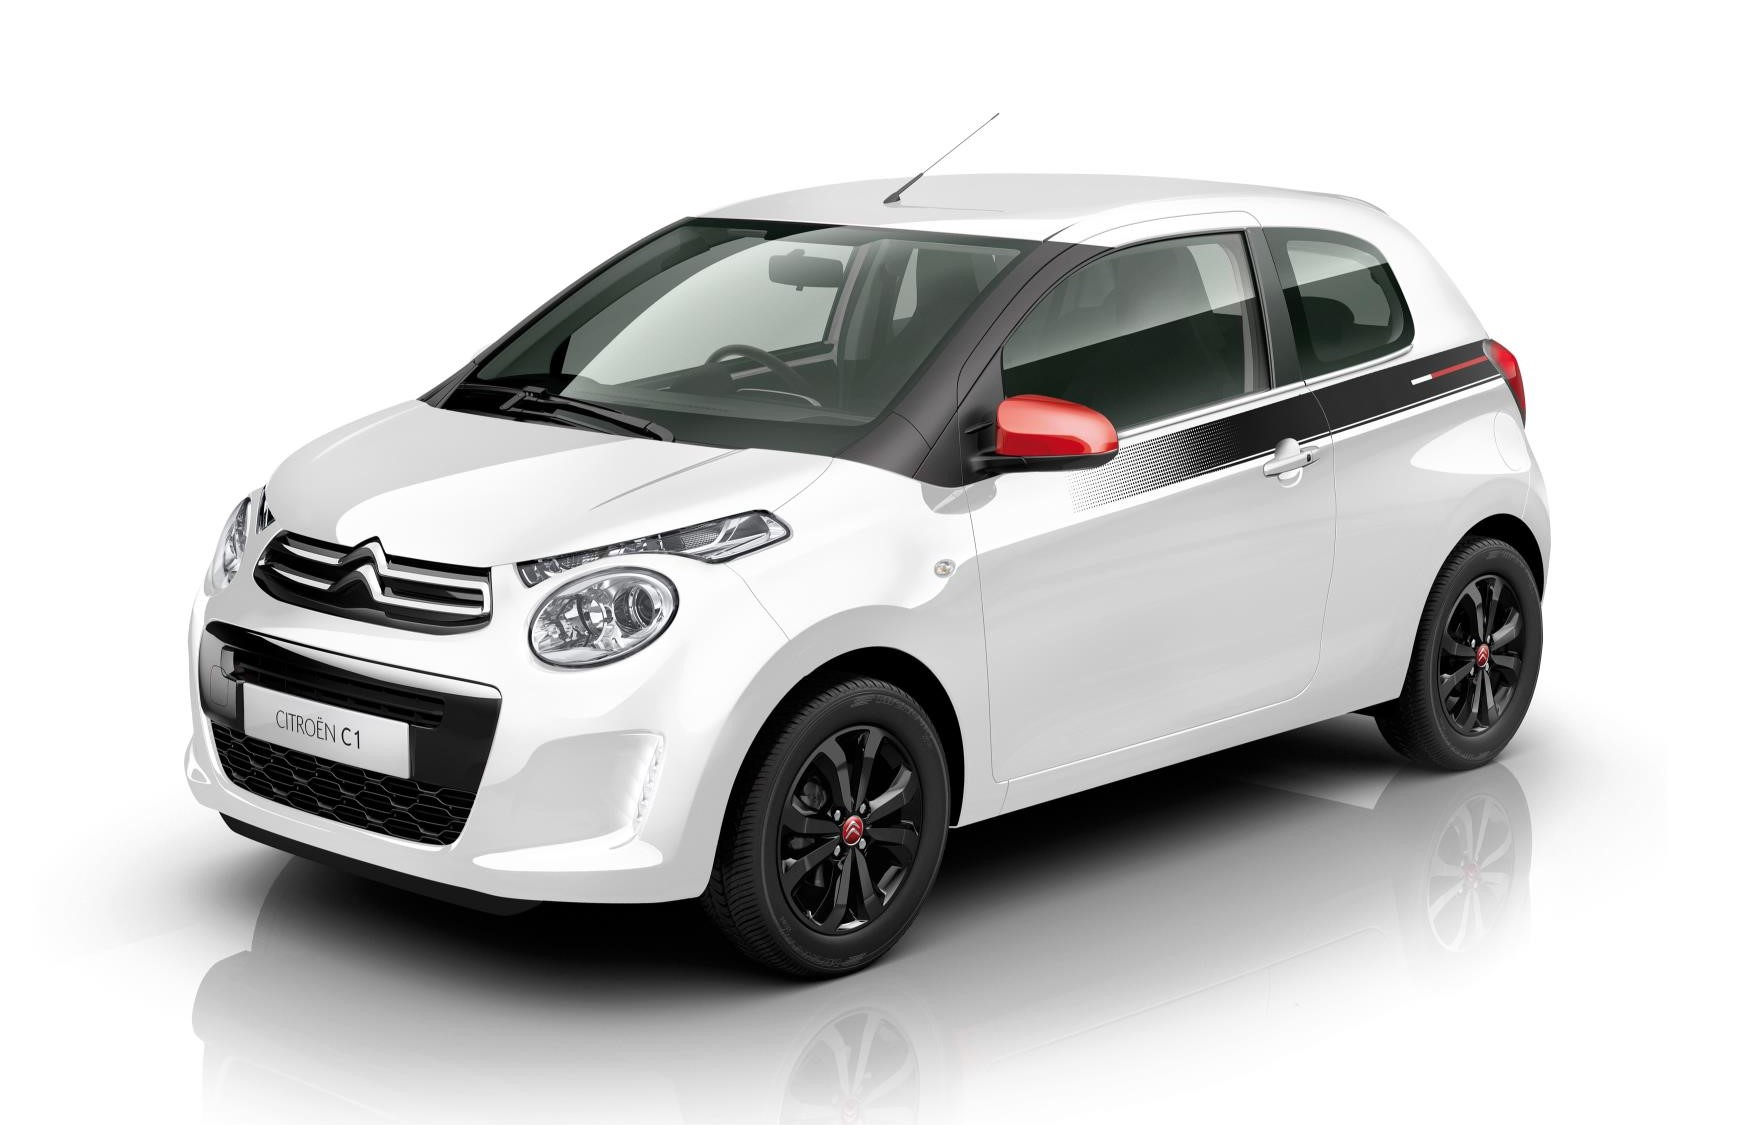 citroen c1 furio takes a bow. Black Bedroom Furniture Sets. Home Design Ideas